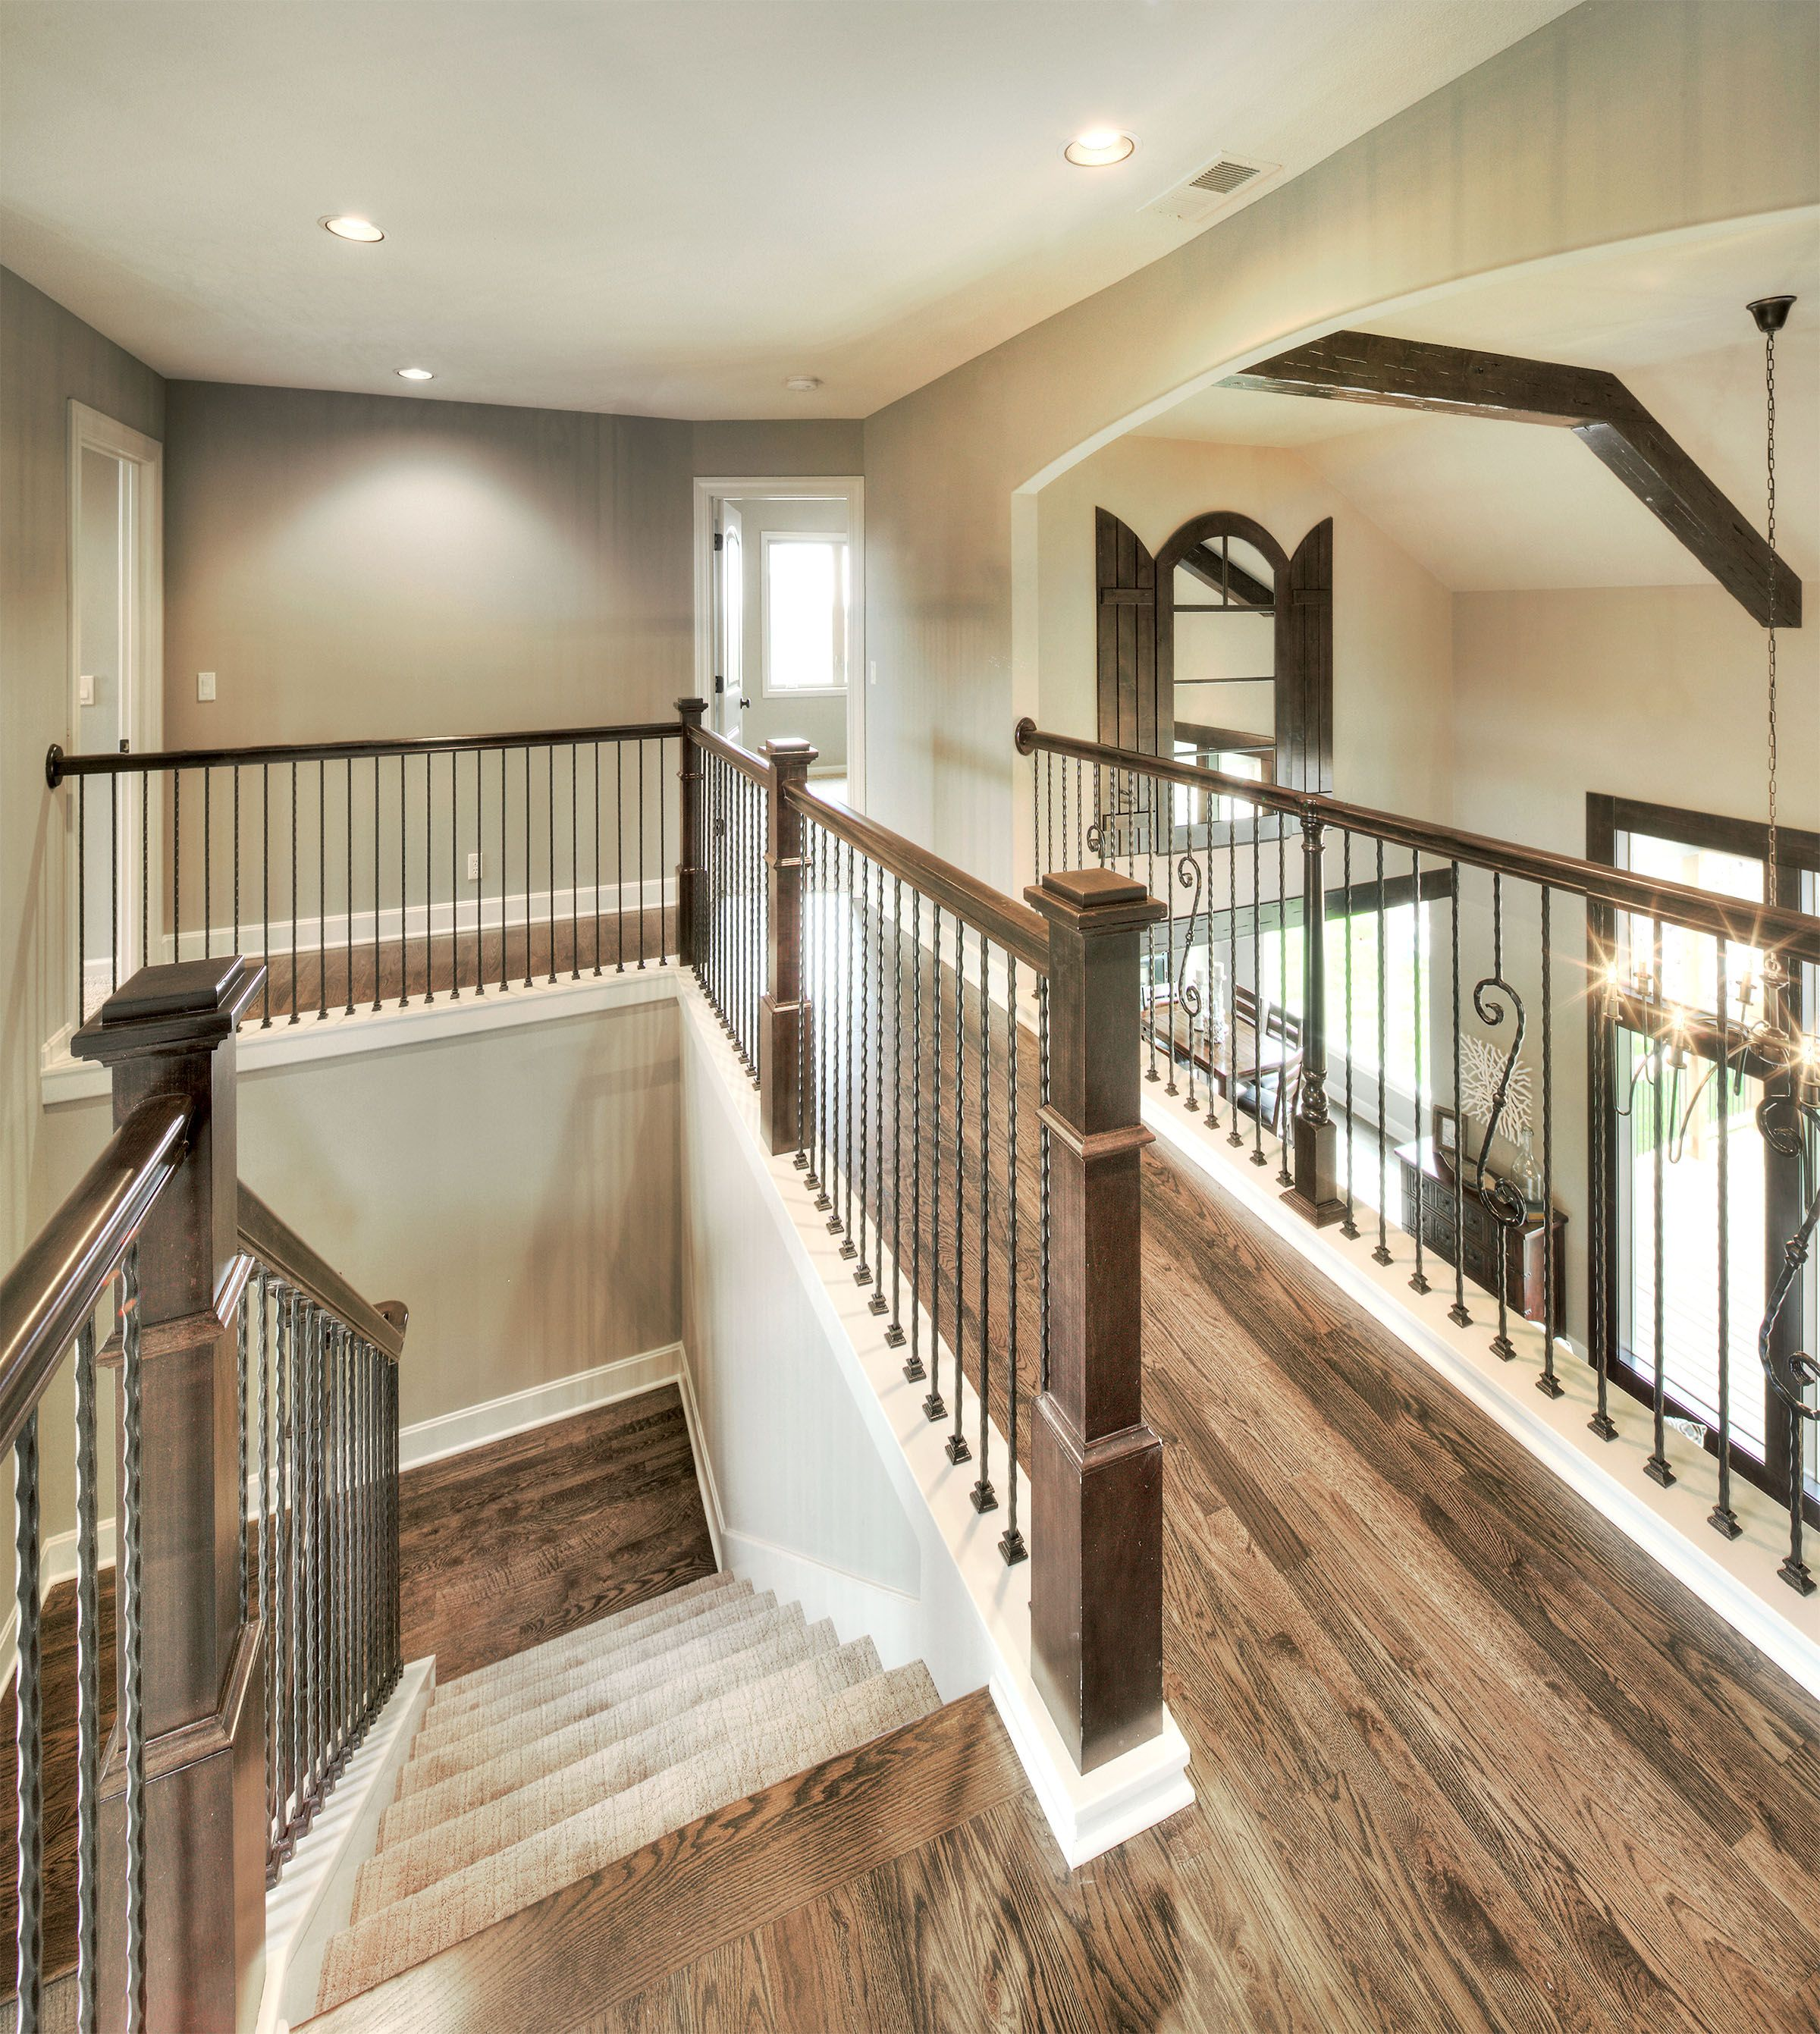 Merveilleux Hardwood Floors: Upstairs Hall Hardwoods Http://www.bickimerhomes.com/